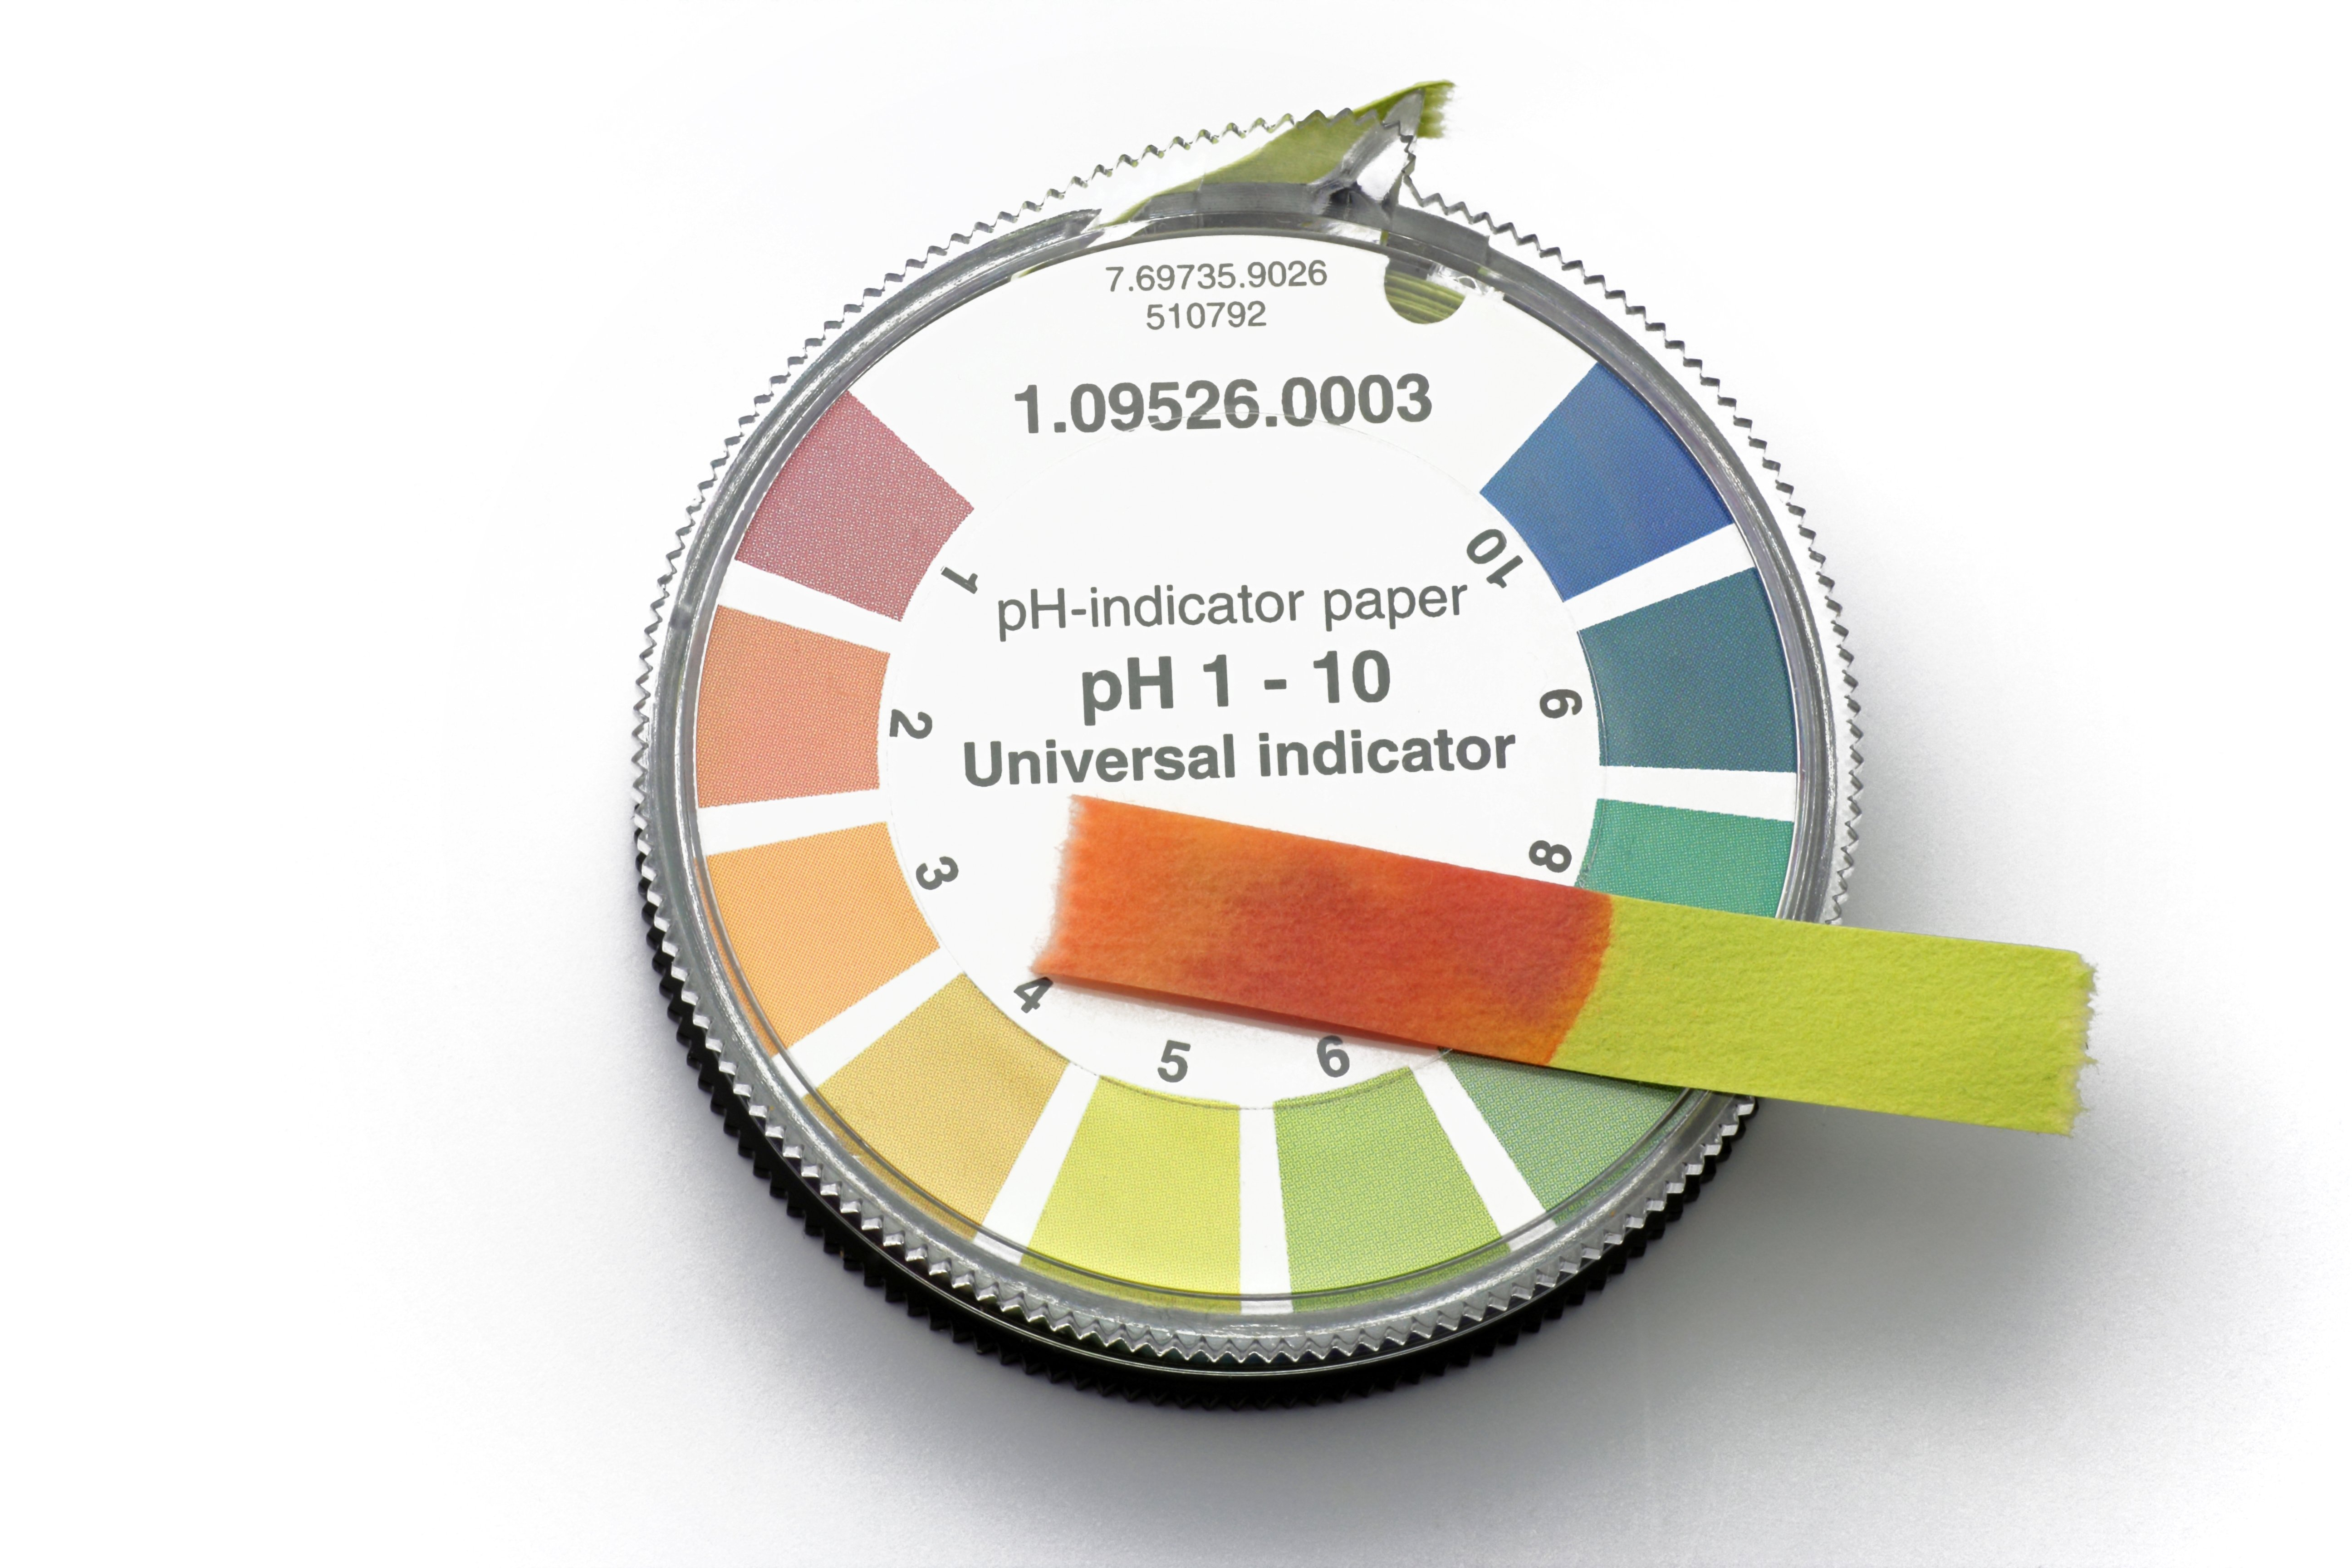 pH testing strips can be used to test your pH